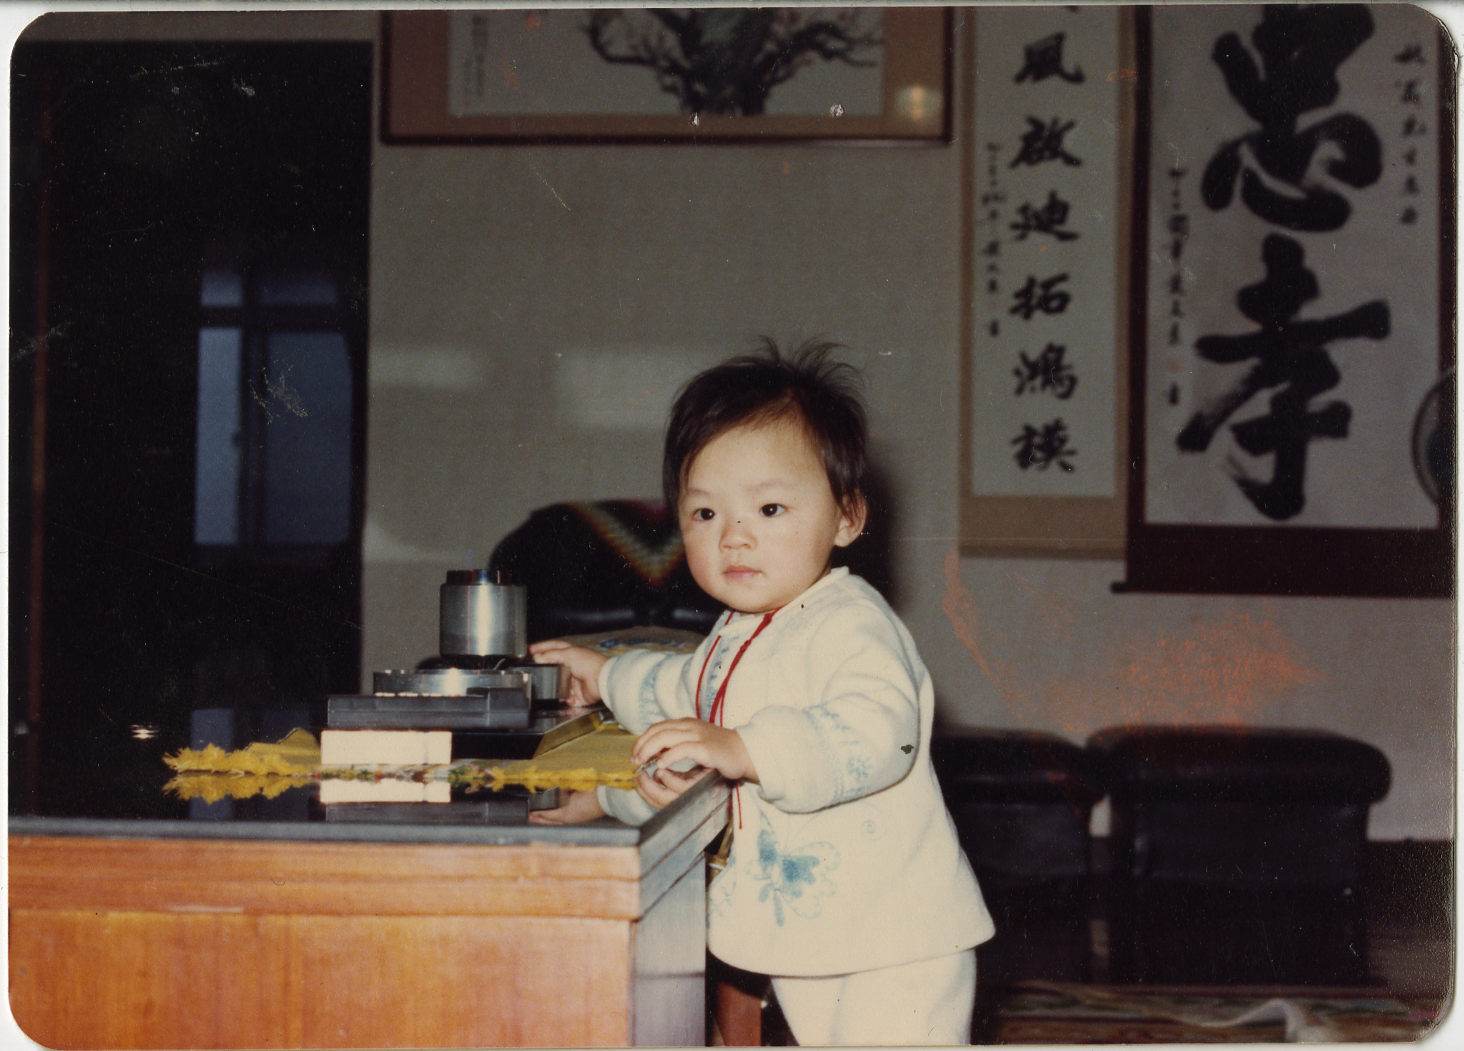 Kathy Kuo as a baby